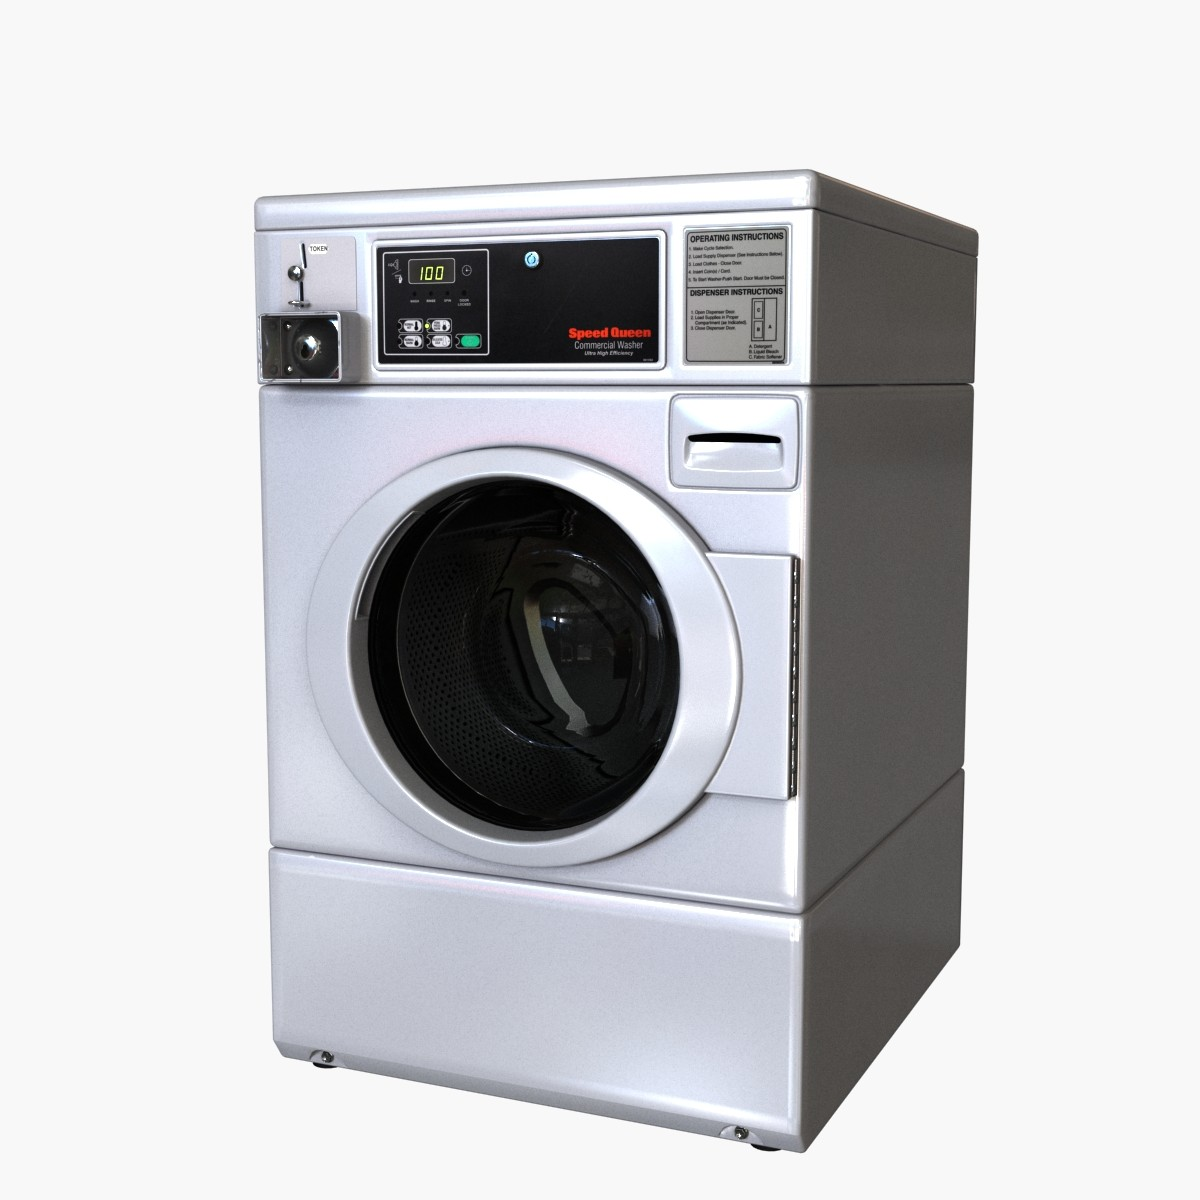 Speed Queen Washer Reviews Stack Laundry When Did You